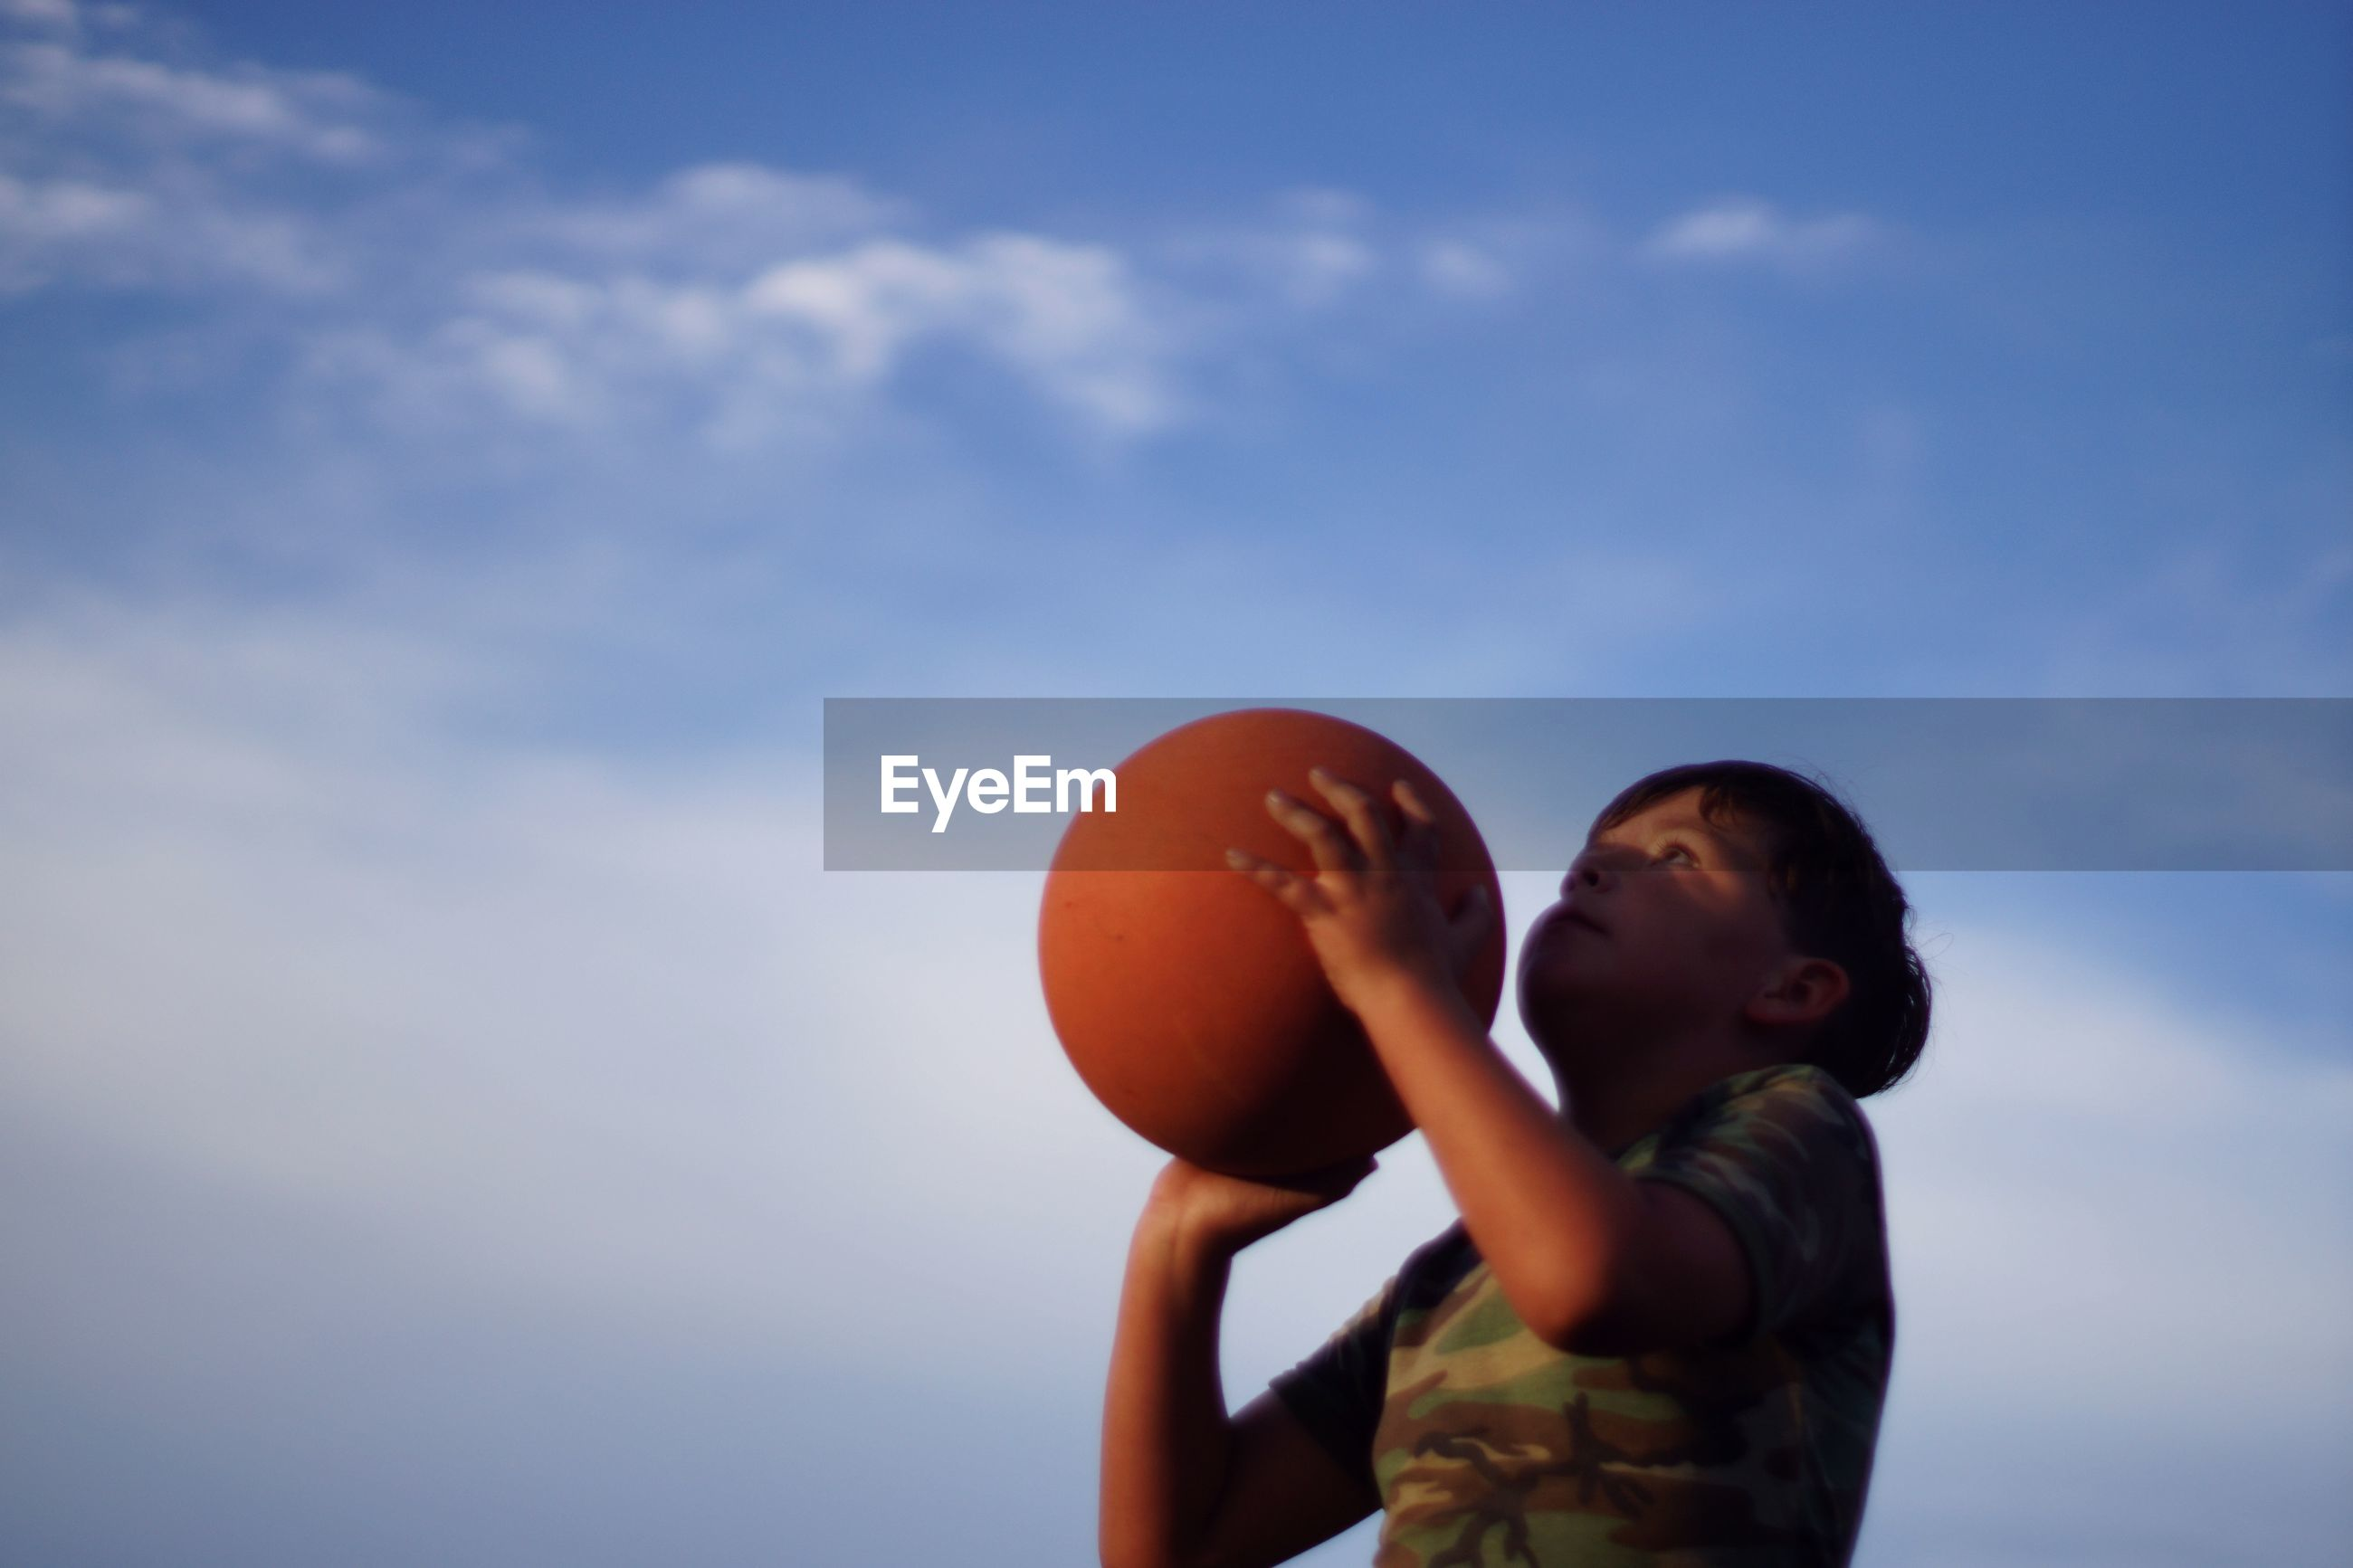 Low angle view of boy playing with basketball against sky